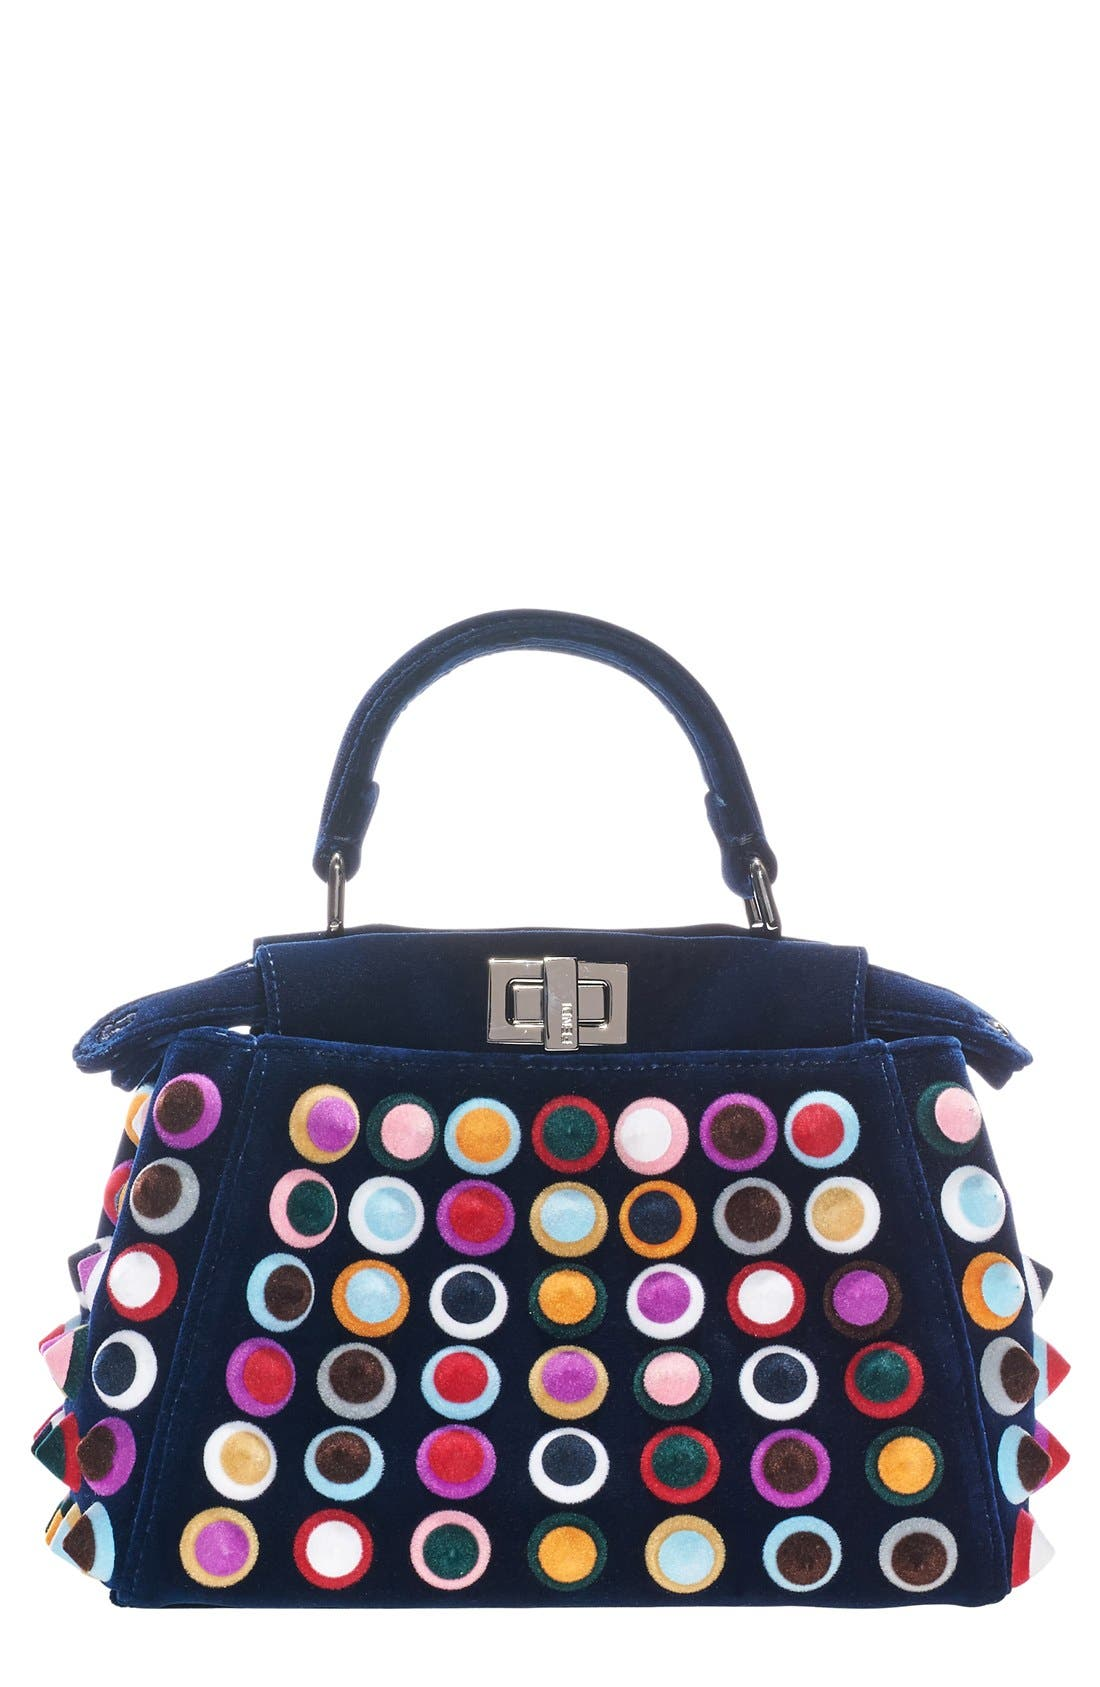 'MINI PEEKABOO - MULTISTUDS' VELVET BAG - BLUE